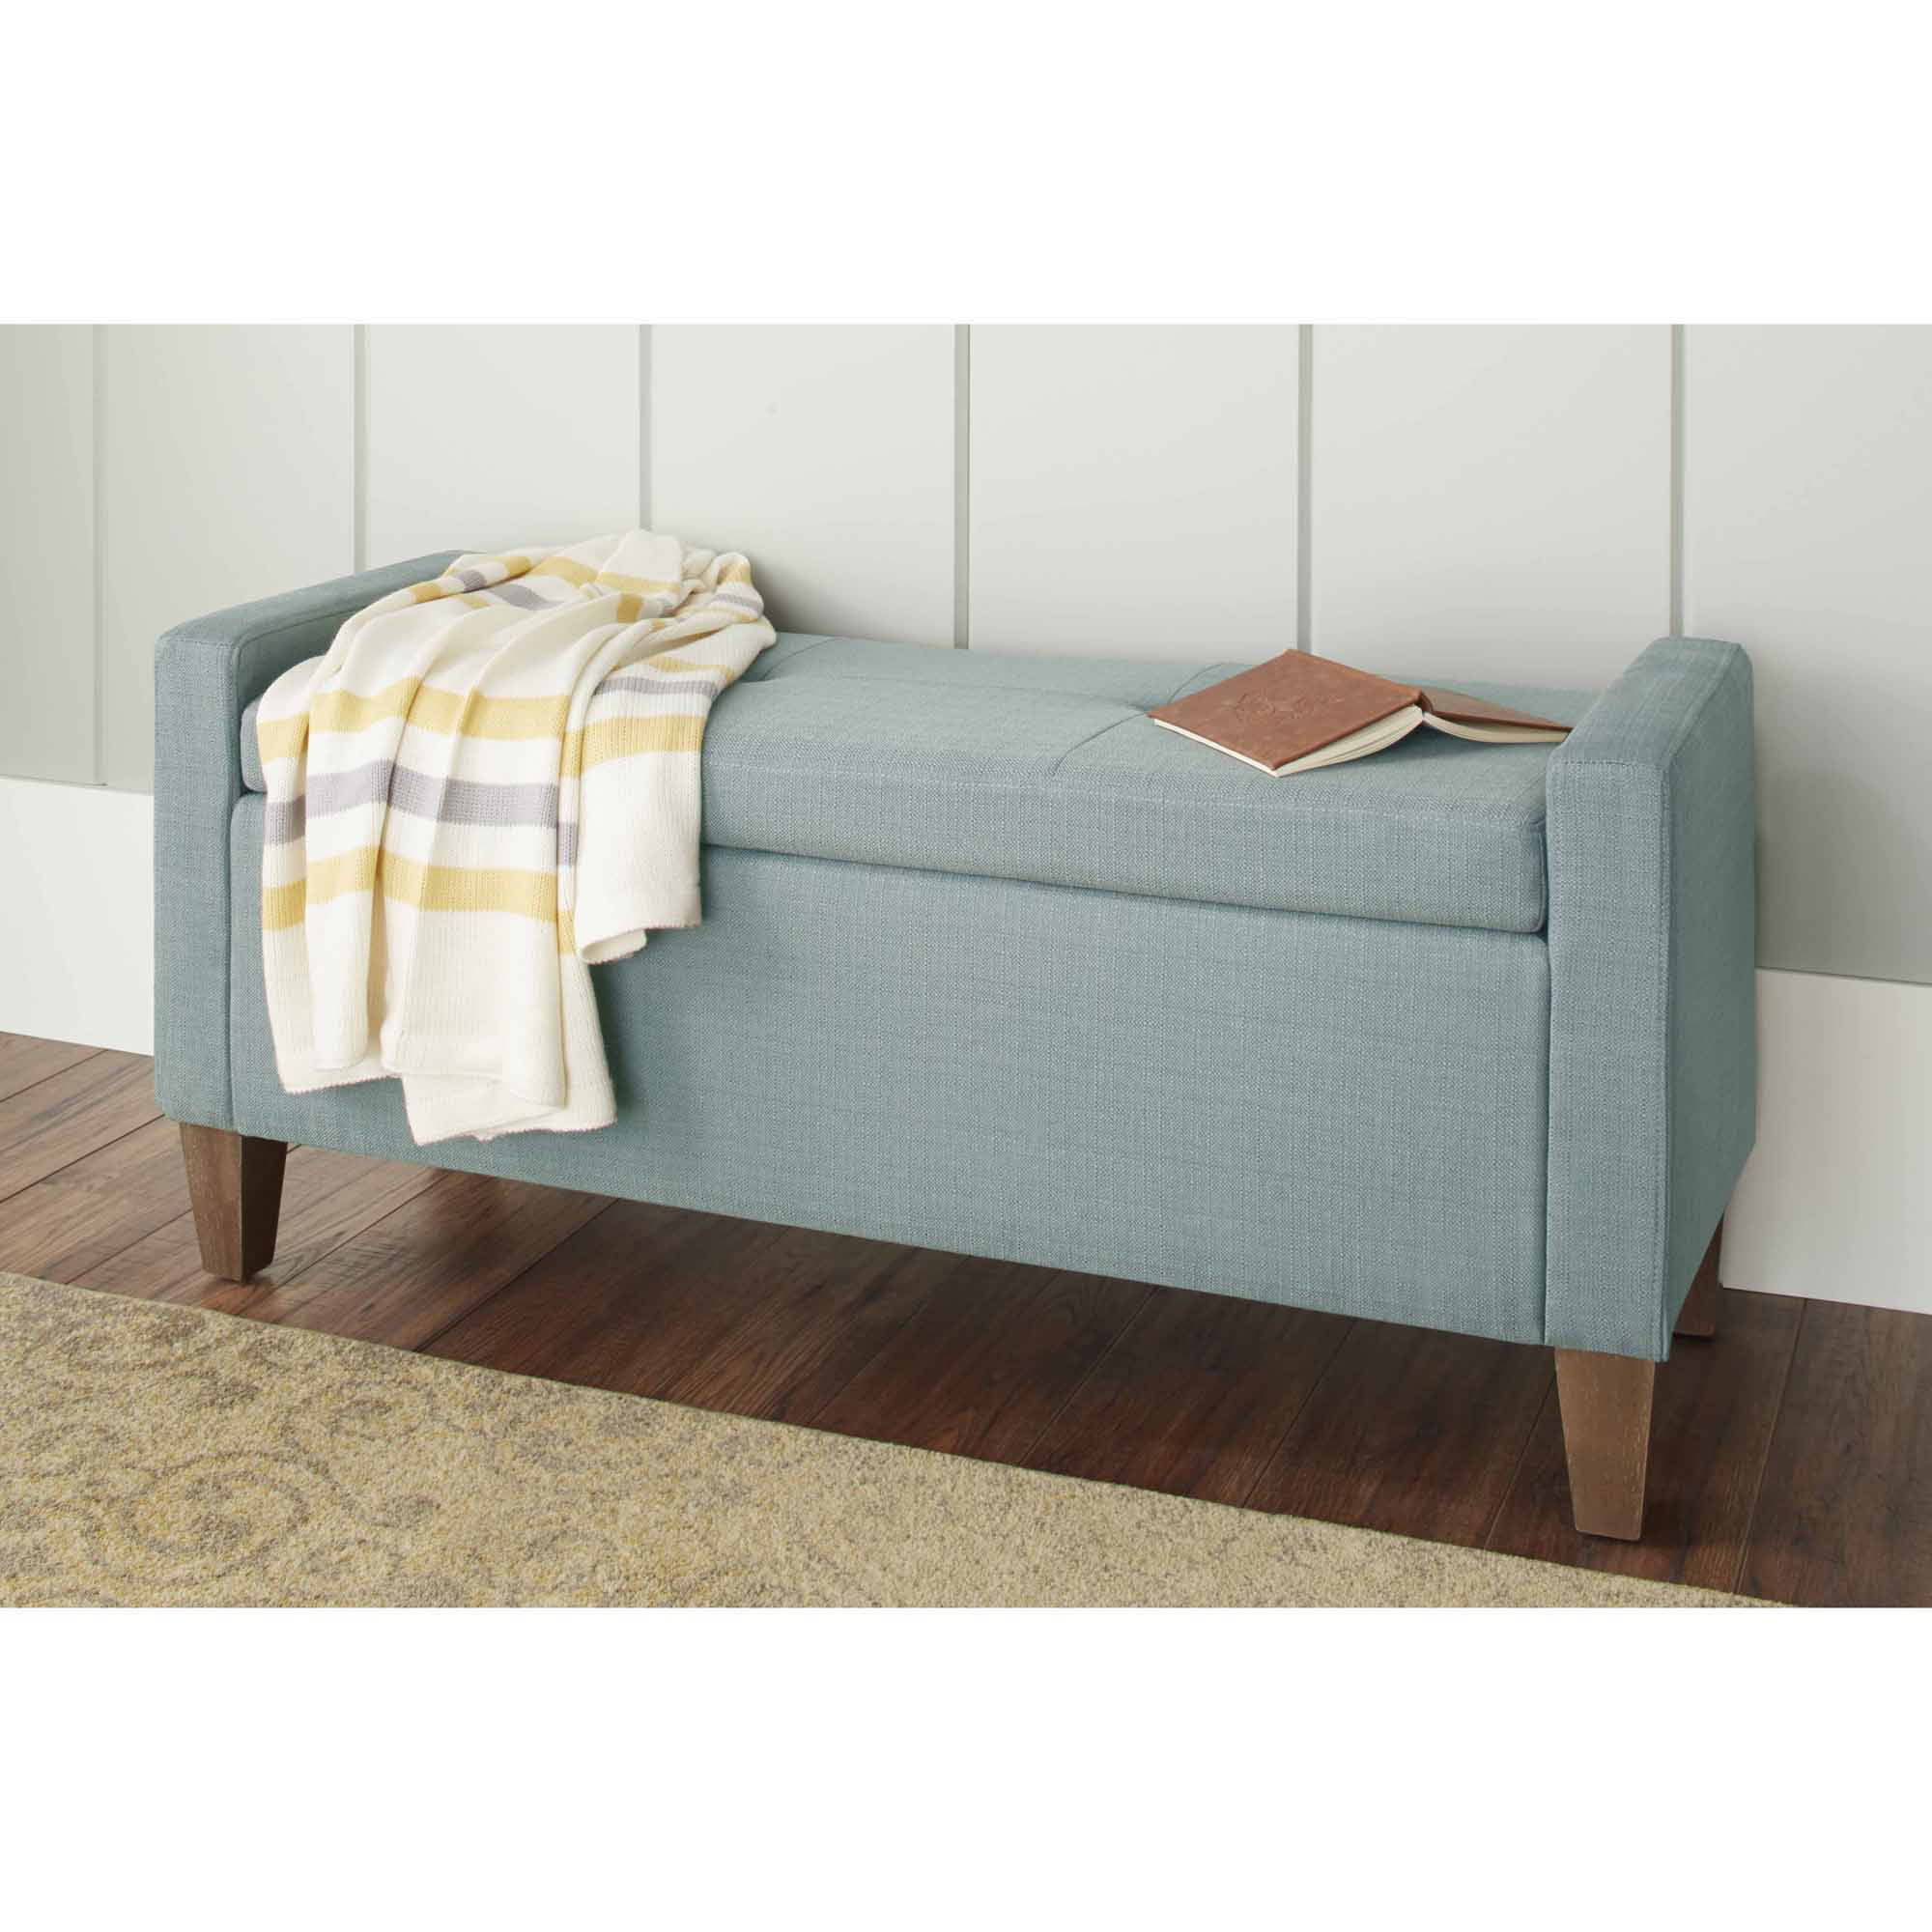 10 Spring Street Streeter Storage Bench, Multiple Colors   Walmart.com